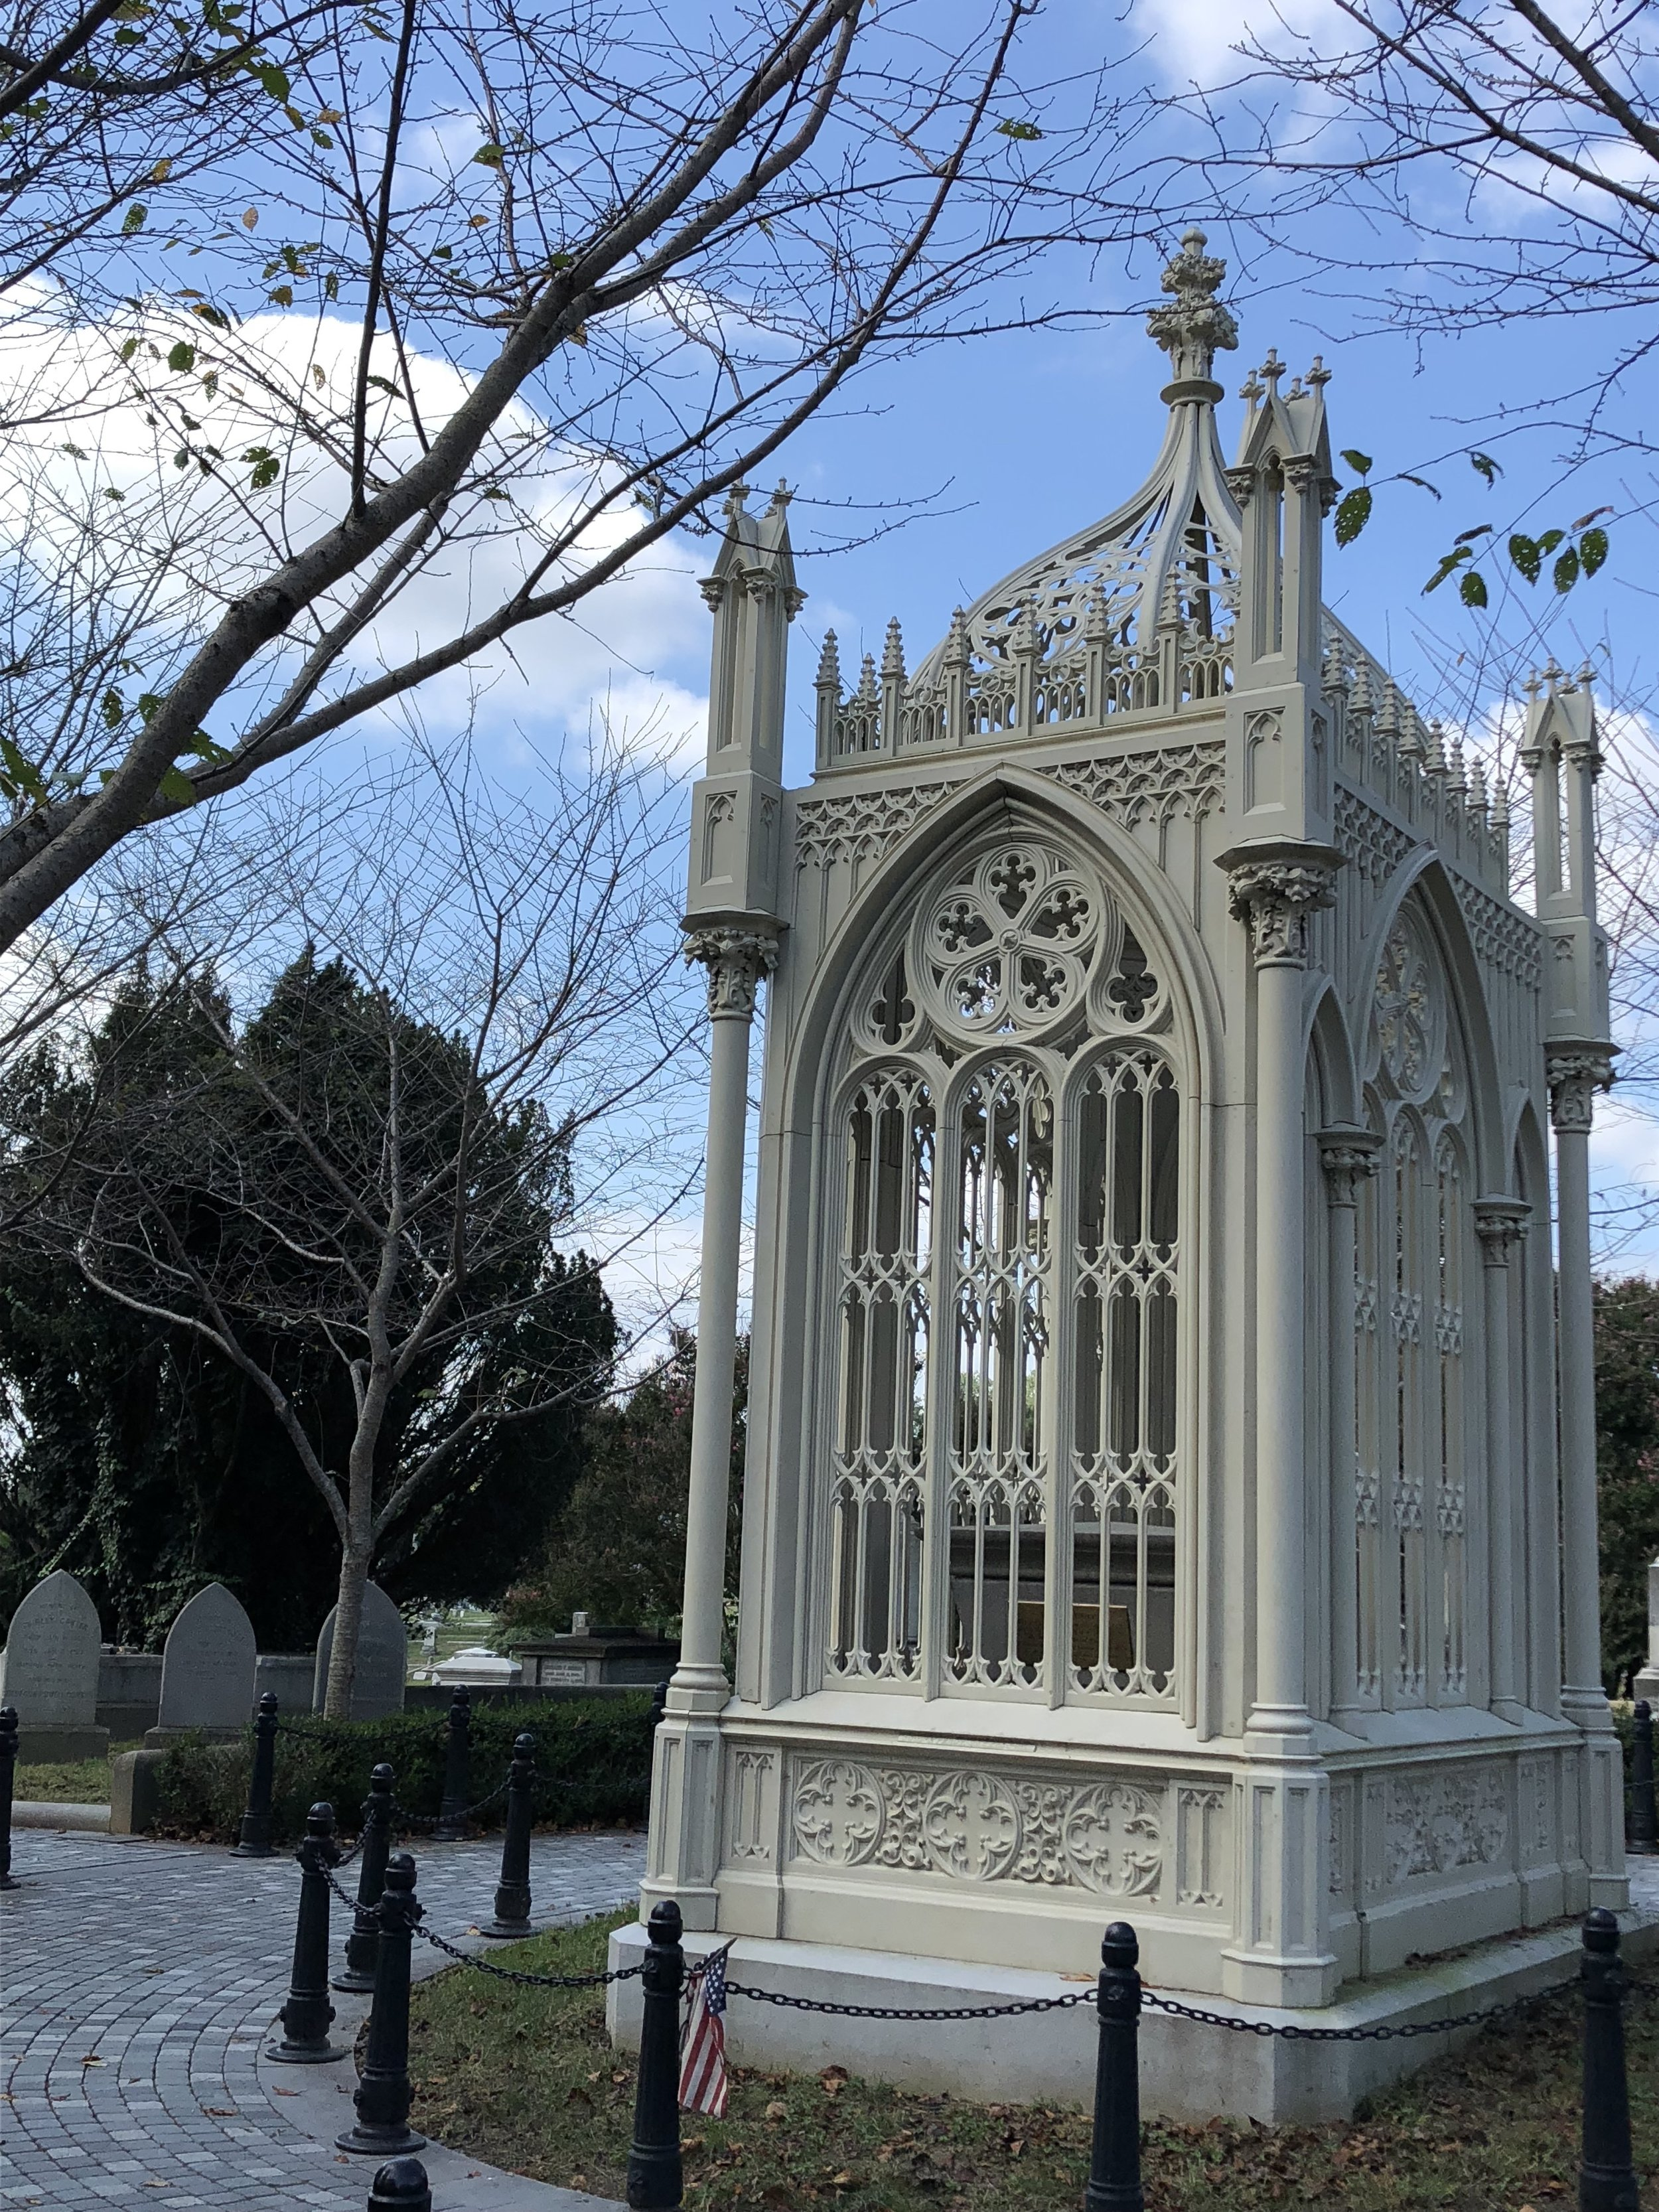 Somewhat to my surprise, James Monroe's tomb was just a few steps away from Tyler's in Hollywood Cemetery. Jefferson Davis is also buried in the same cemetery. Not shown here is Elizabeth Monroe's modest plot at the side of President Monroe's impressive structure. Not sure how that's going over in the afterlife.